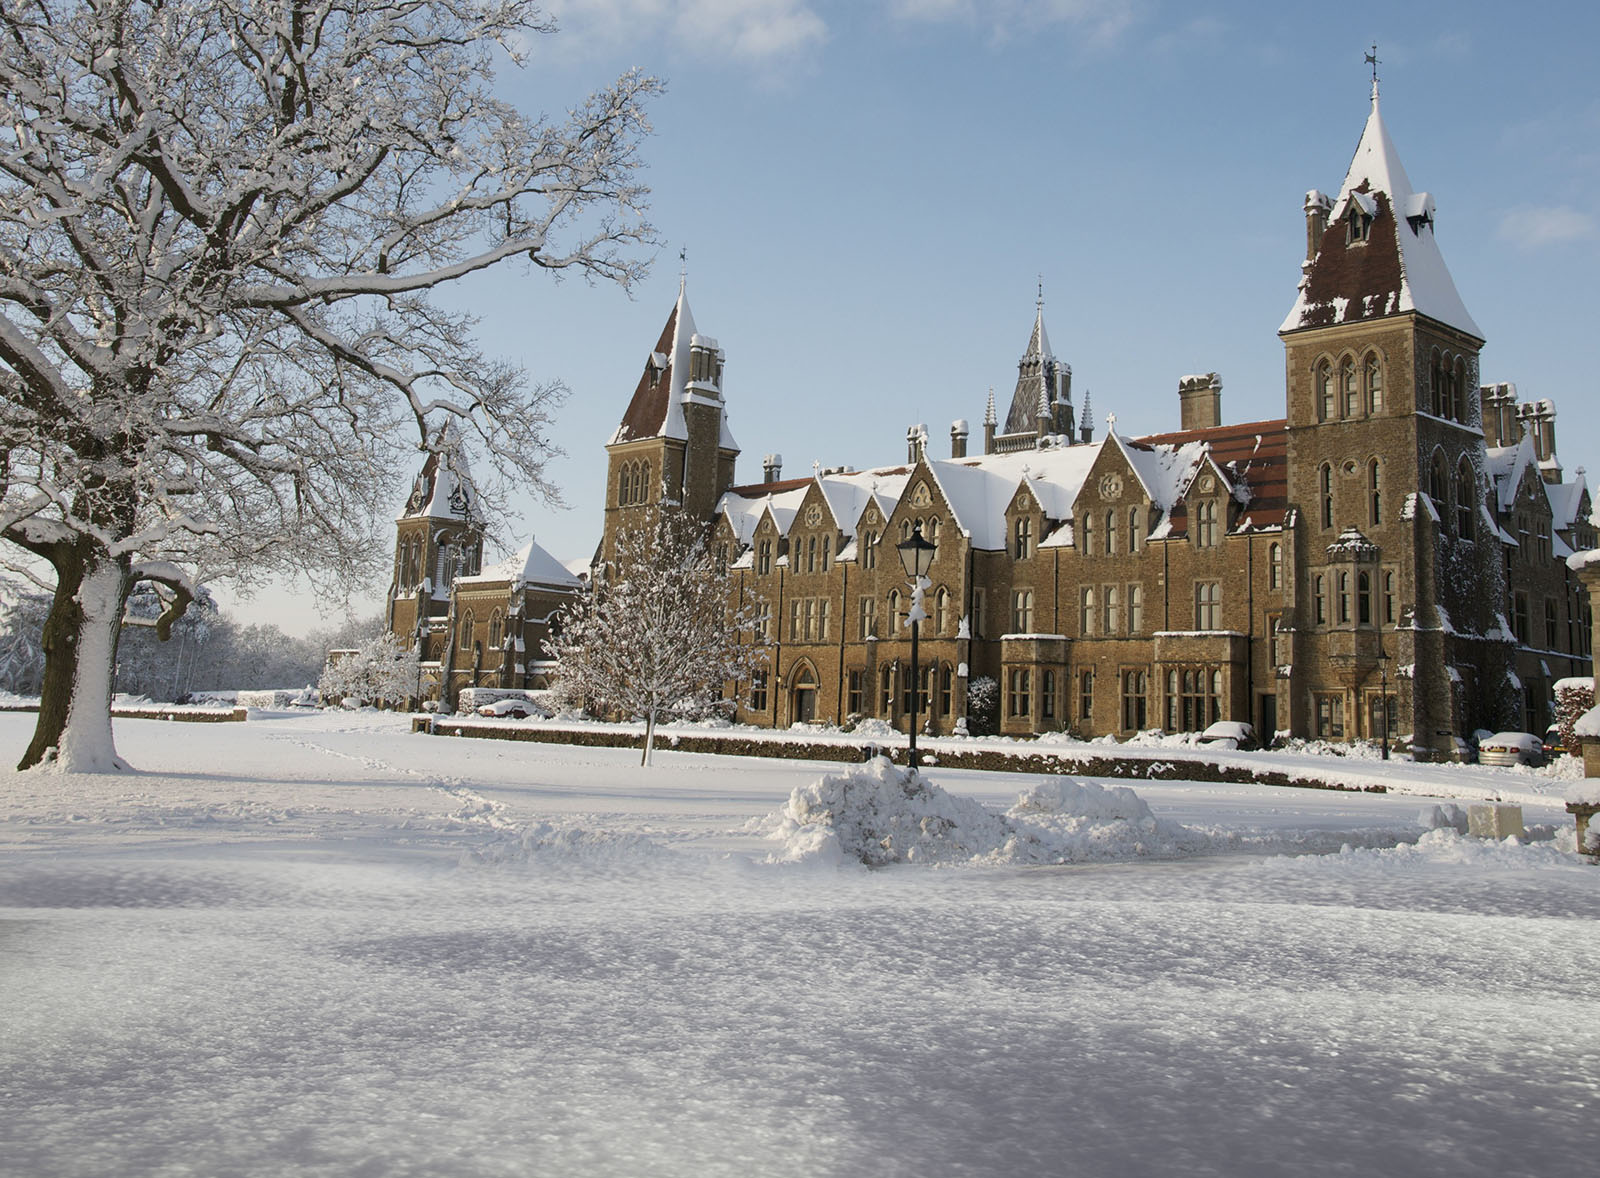 Charterhouse School, Godalming in the snow.